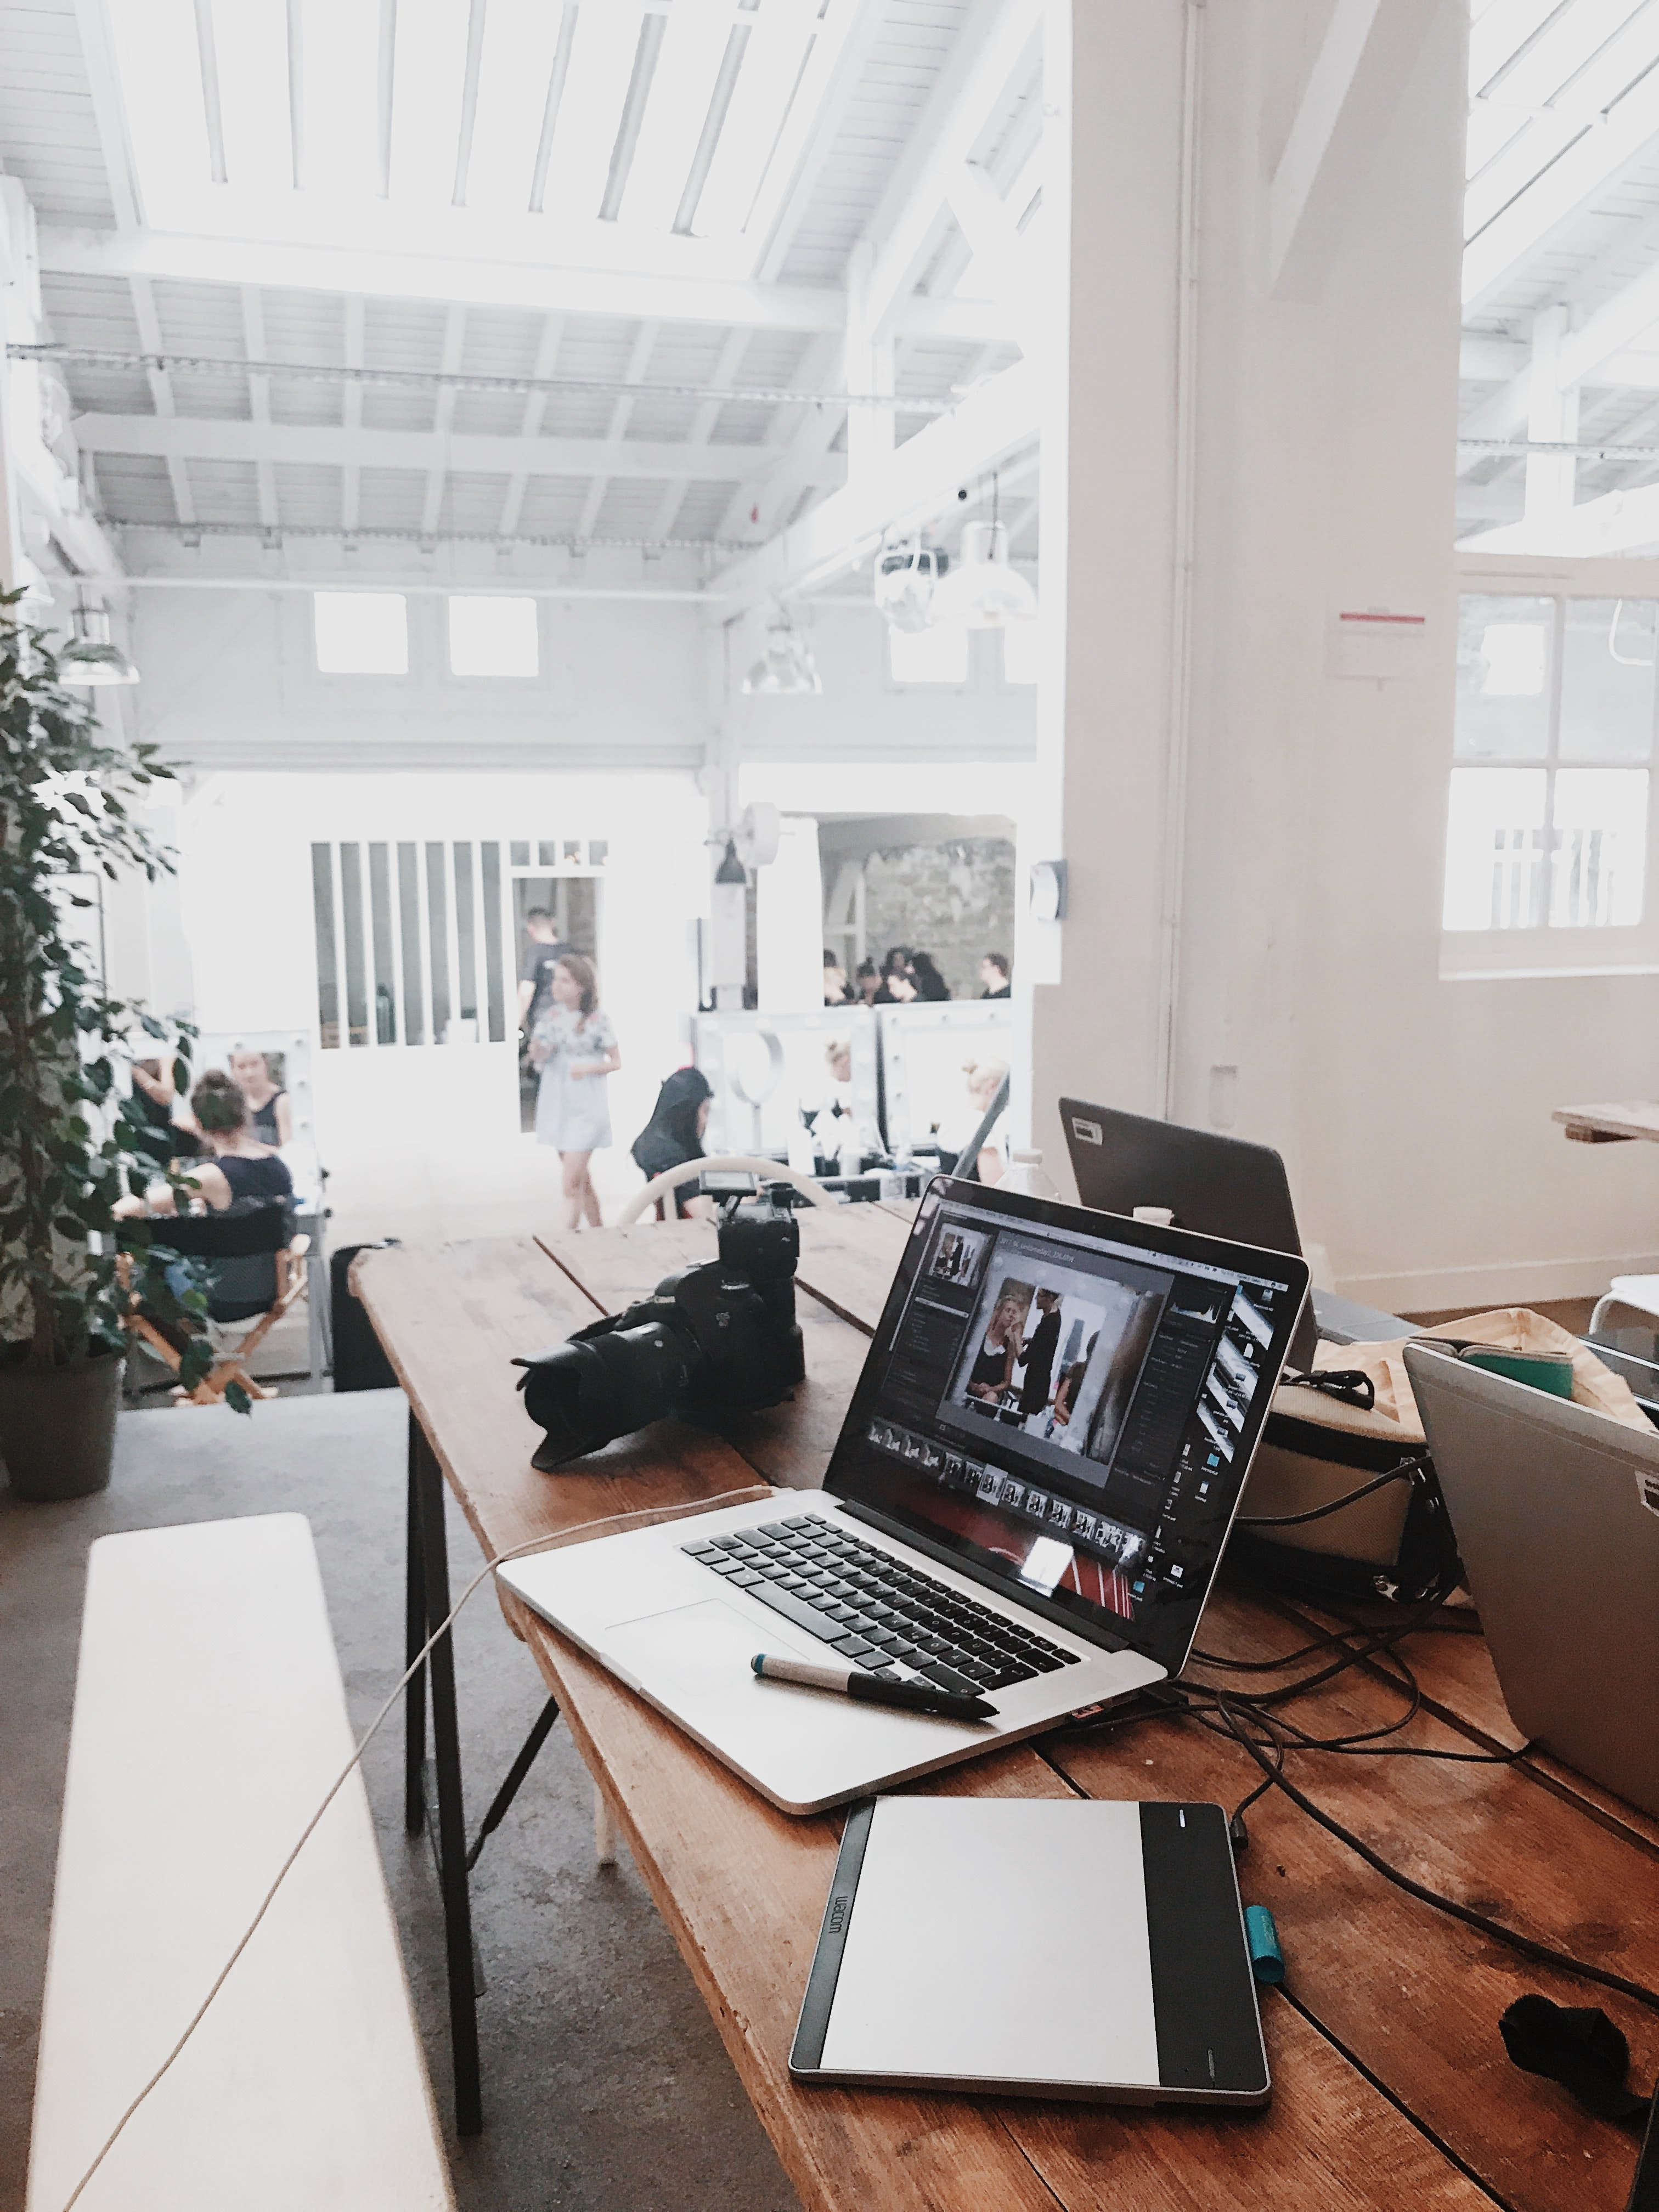 Office image with computer and camera